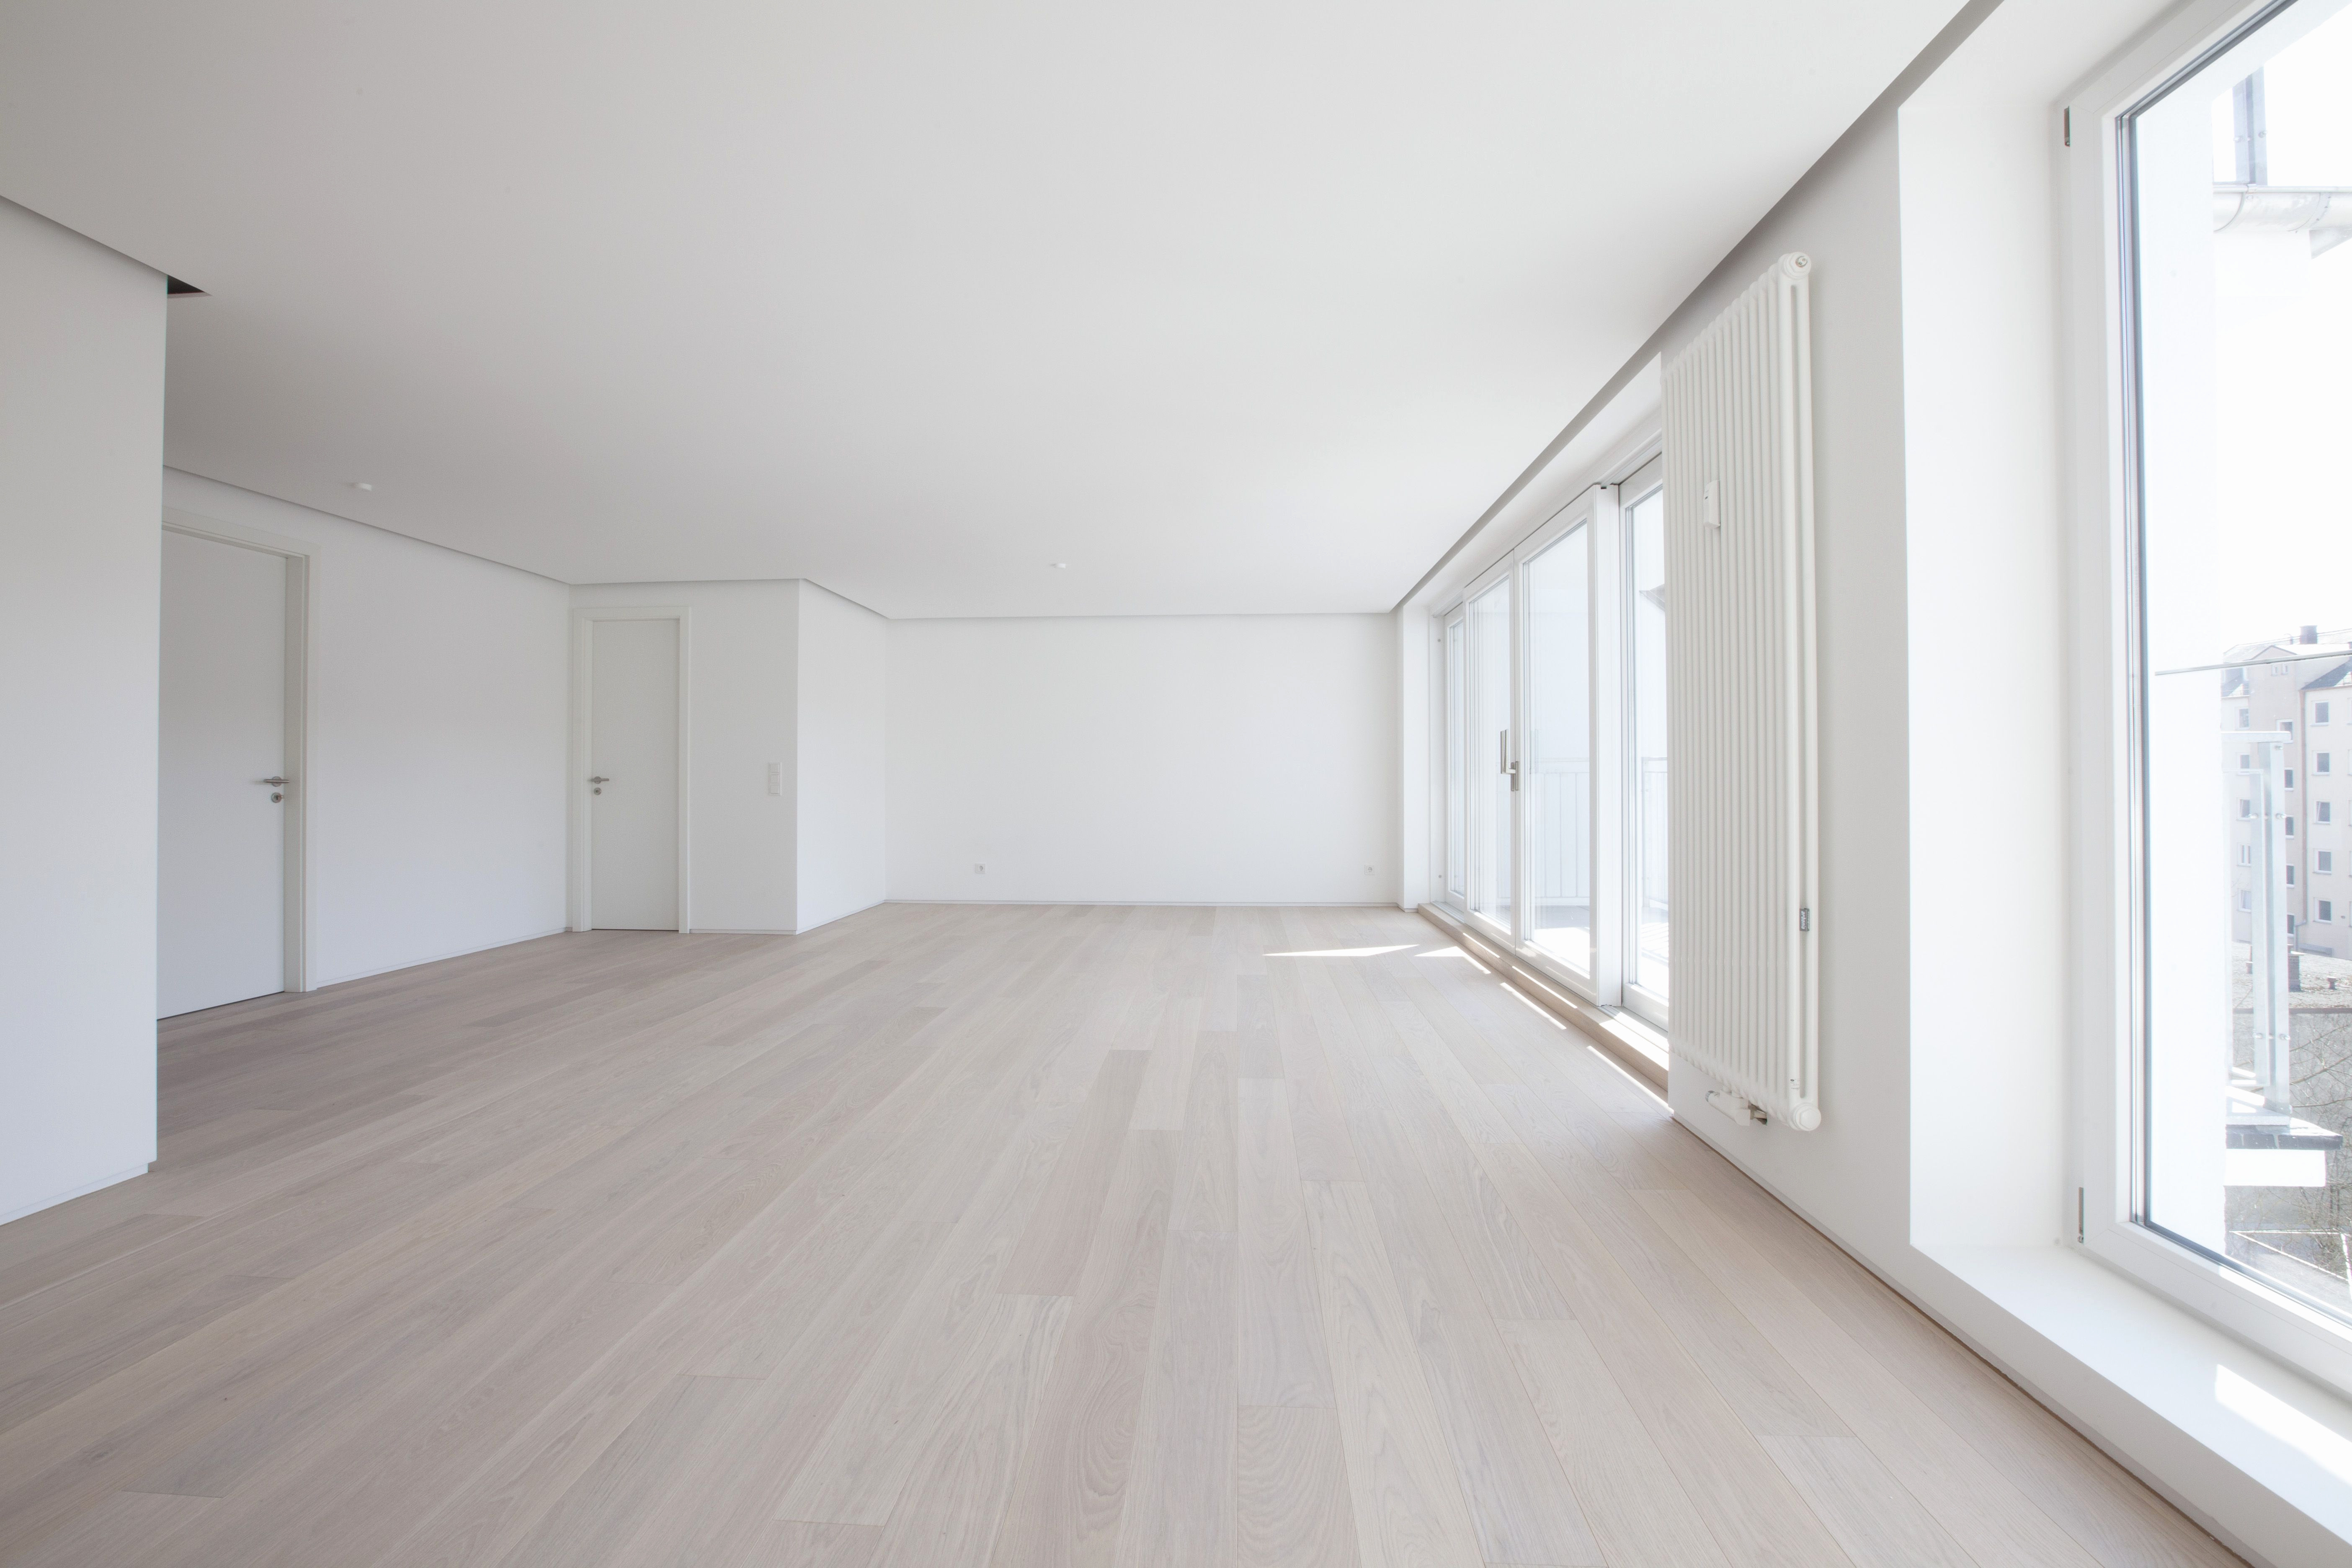 hardwood floor cleaning new york of how to get wax off wood floor floor with how to get wax off wood floor 50 best how to get wax f hardwood floors